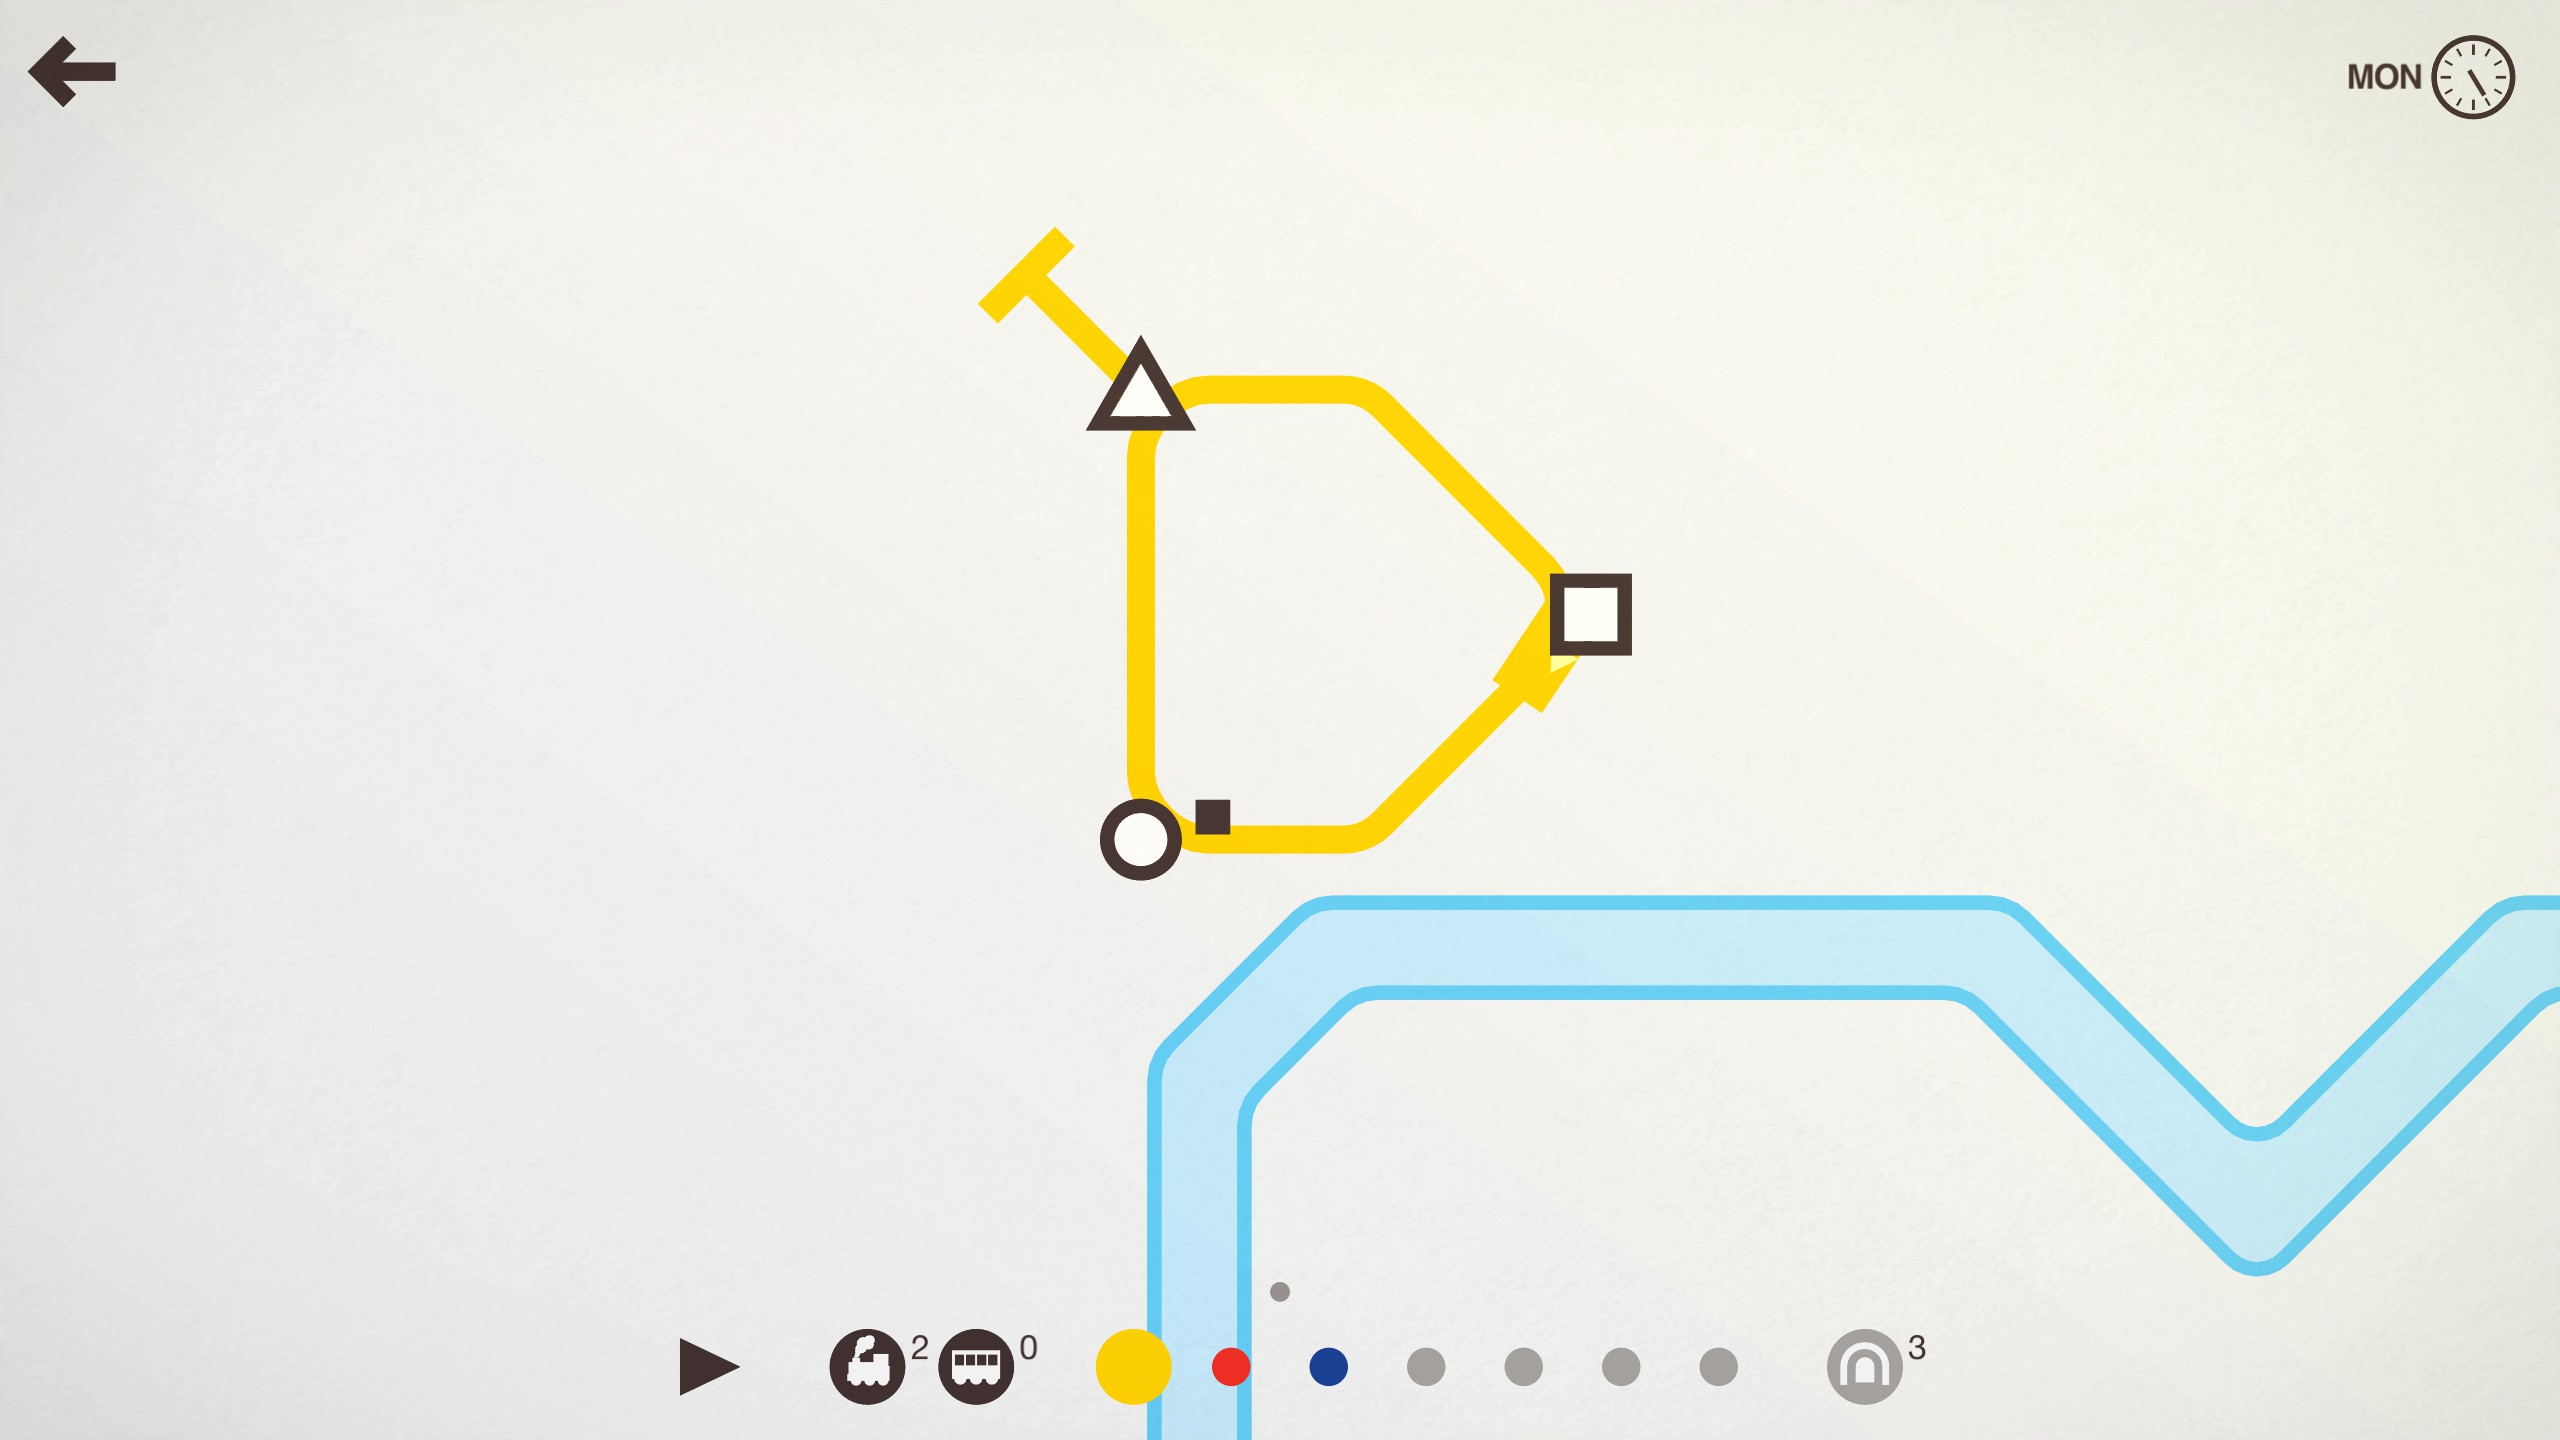 Steam Community Guide The Mini Metro Extensive Beta5 Two Station Start Stop Wiring This Will Mean Instead Of Reaching End Track And Heading Back It Go Around Circuit Usually Is But Not Necessarily Better